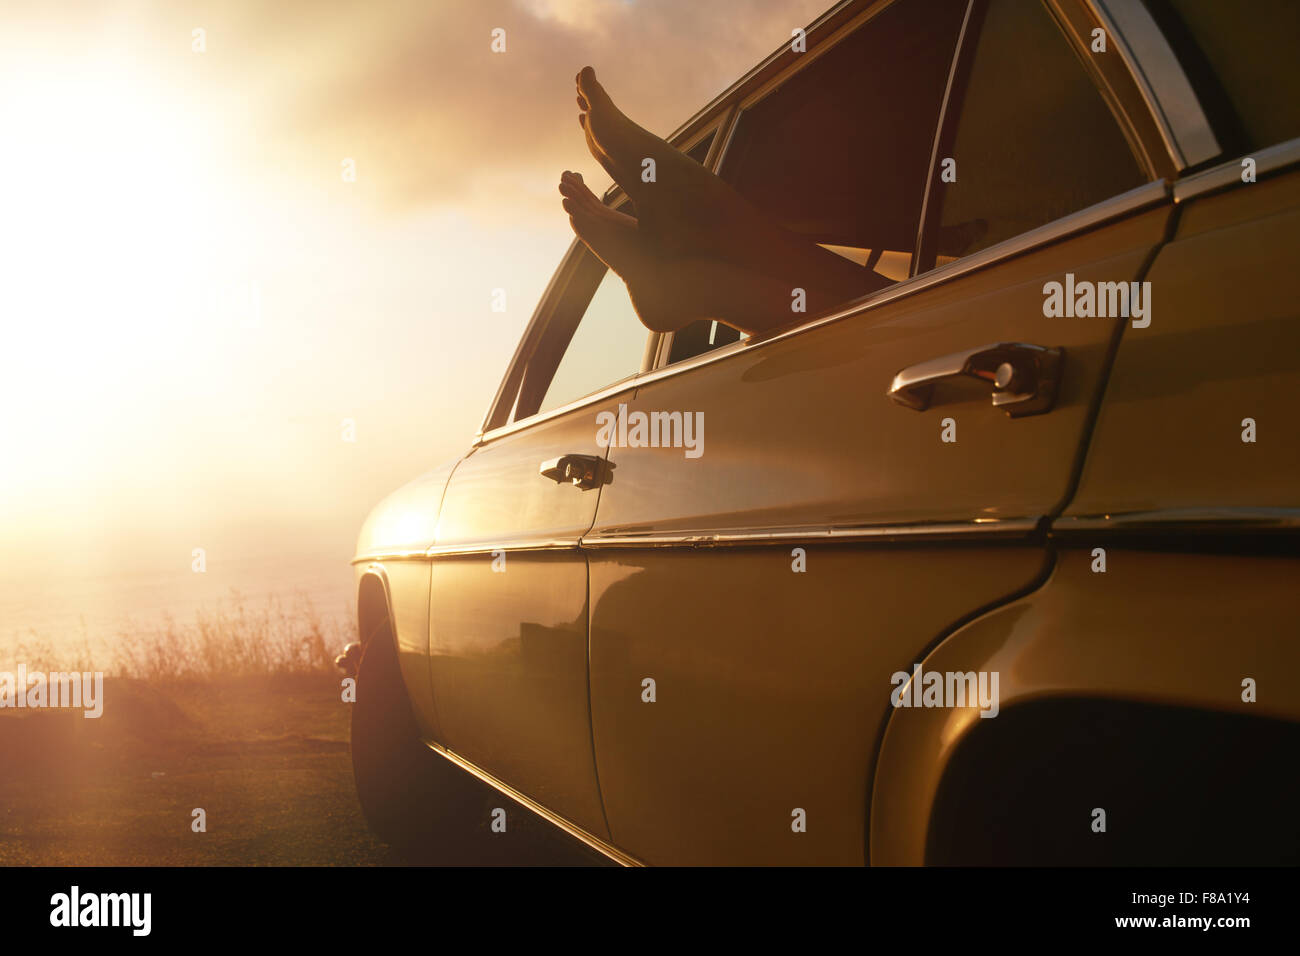 Shot of woman relaxing in a car on road trip. Pieds femelles sortir de la fenêtre du véhicule au coucher Photo Stock